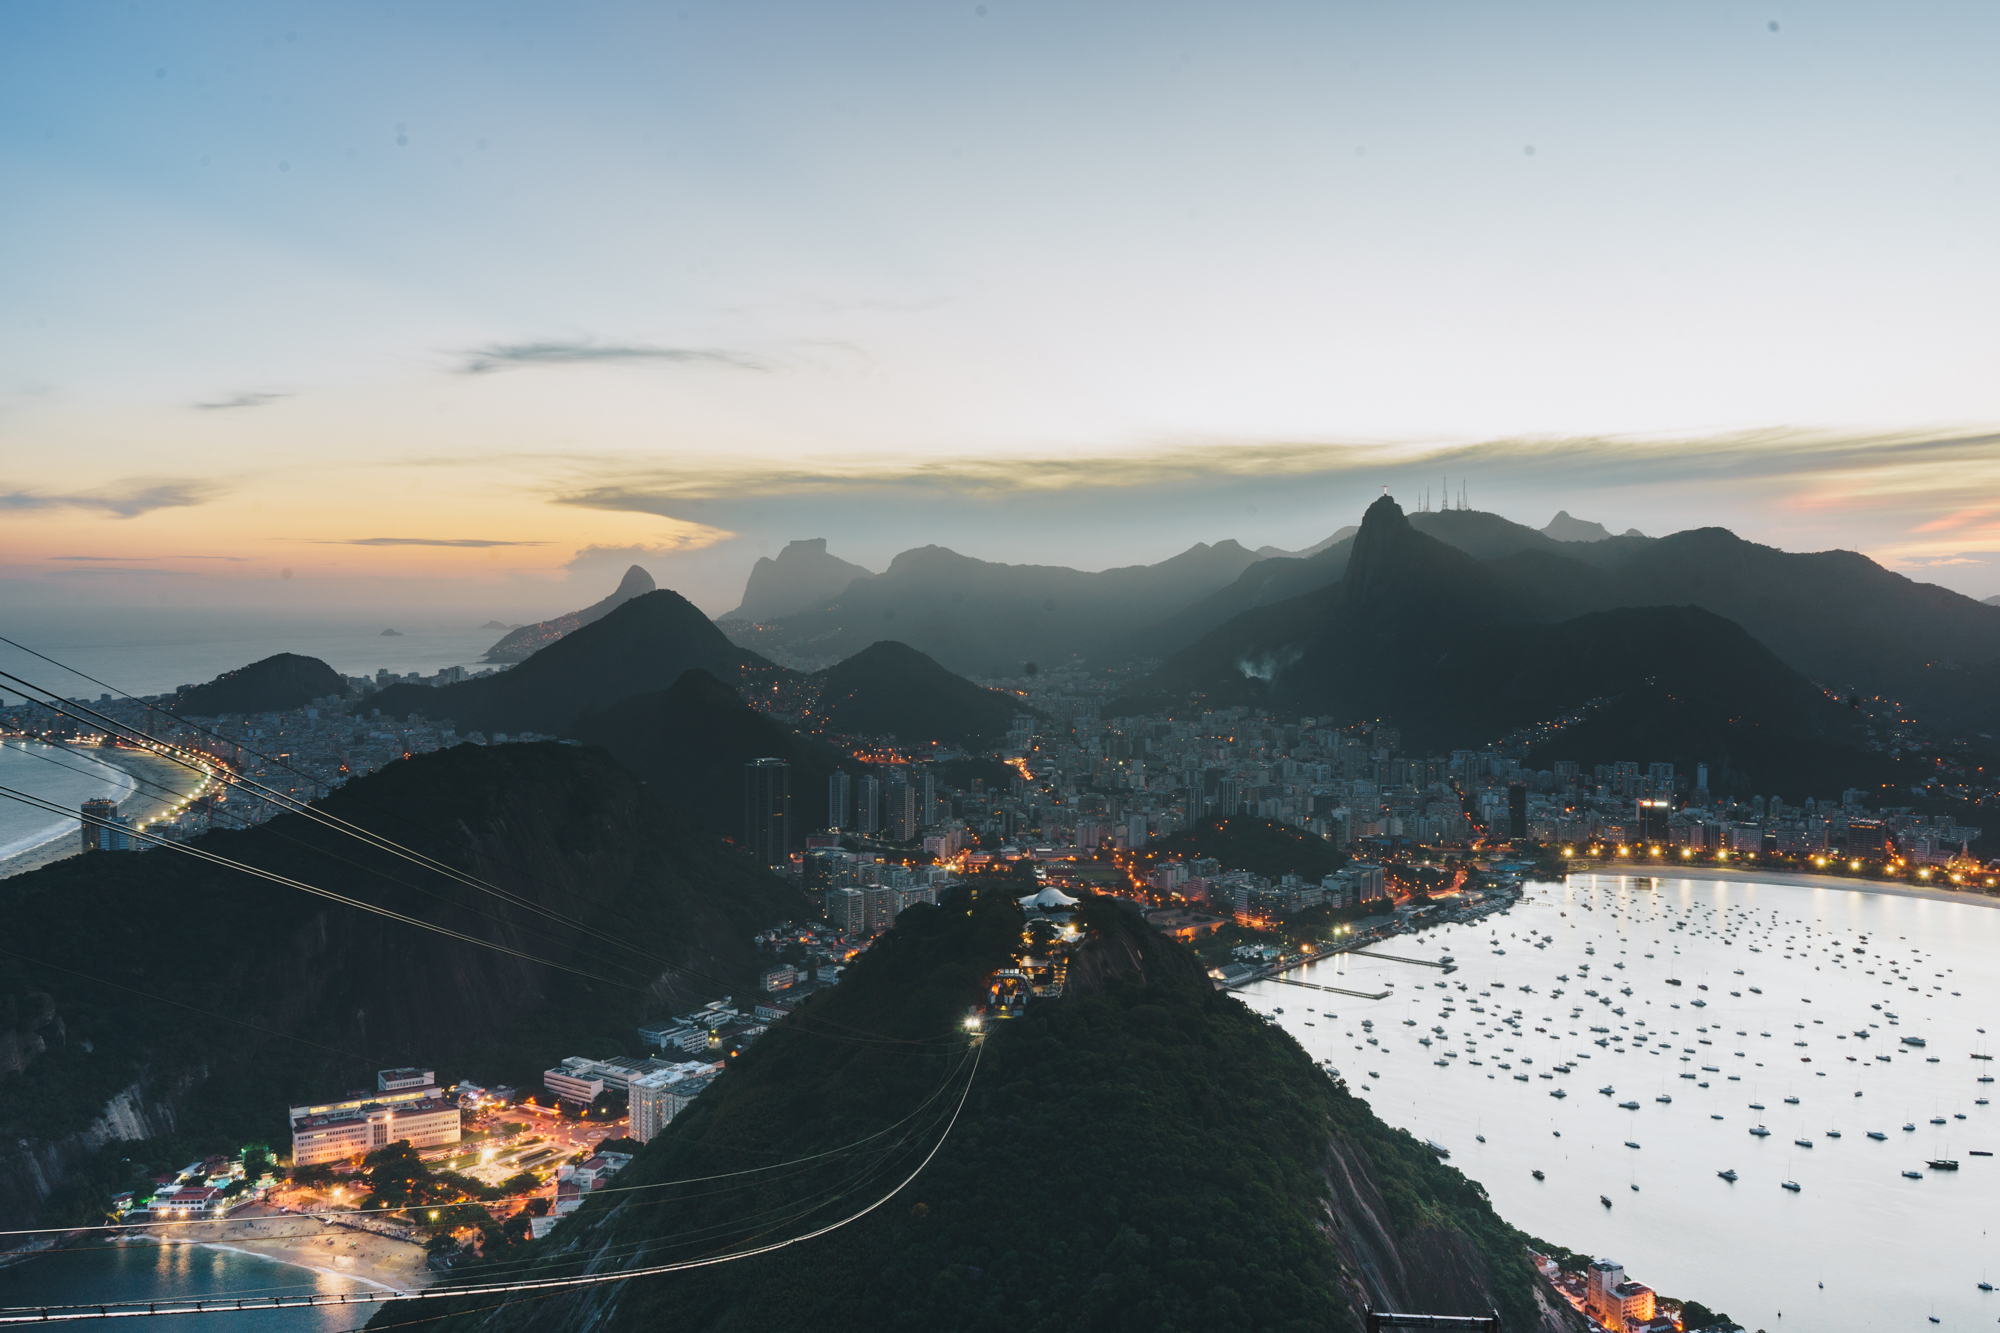 Staying in and exploring the Favelas of Rio de Janeiro - By Anna Tiner